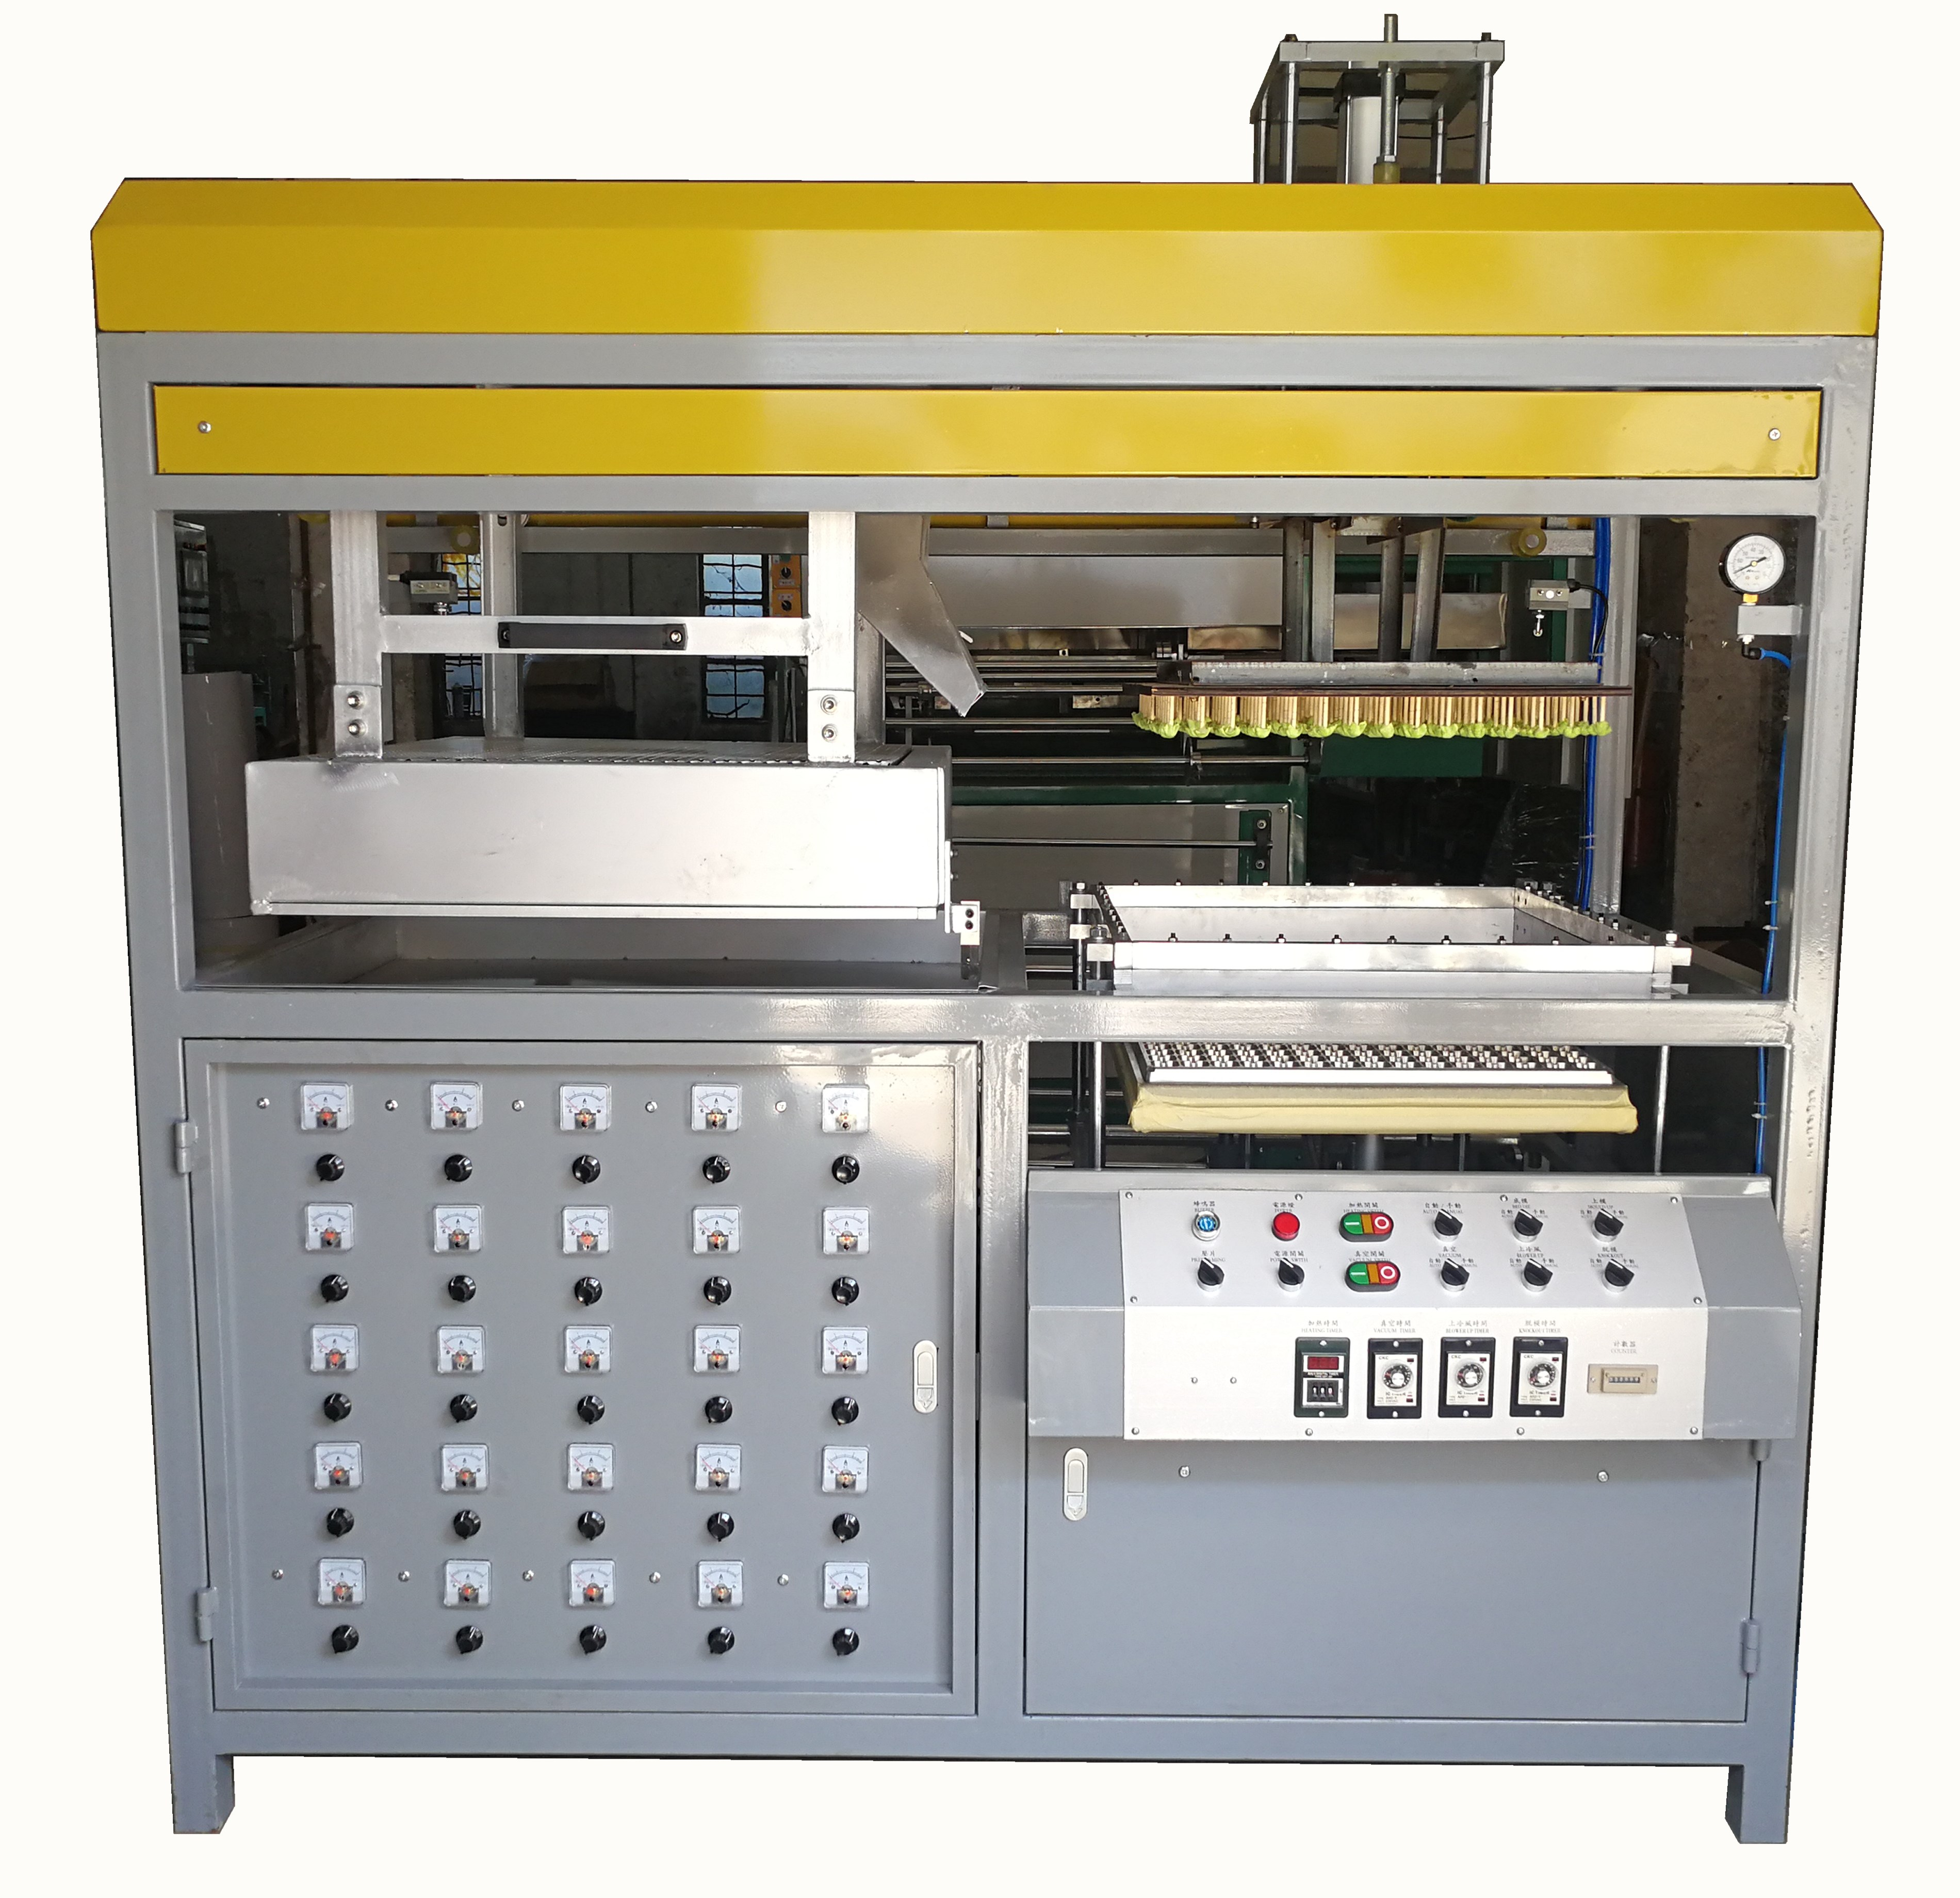 Automatic High Speed Vacuum Forming Machine Applications The manual blister vacuum forming machine is suitable for materials like PVC,PE, PET,PC,PP,HIPS,APET,PETG,PS, etc. And it's mainly used in the production of snack boxes, various plastic trays, fruit trays, biscuit boxes, toothbrushes, batteries, gifts, cosmetics packaging boxes, toys, stationery, hardware, stationery, decorations, plastic containers, pills and so on. Automatic High Speed Vacuum Forming Machine Features 1. The semi auto blister vacuum forming machine adopts mitsubishi inverter as a master control system. Material length is accurate to within ± 3mm. 2. The cooling fan is equipped with a wide mouth and spray device, to improve efficiency and product quality. 3. There are four processing parts: forming, cutting, stacking & counting, which are simultaneously completed, greatly increased the production speed. 4. The vacuum forming machine for blister clamshell imported electrical and pneumatic components from International well-know manufacturer make the machine features reliable quality and wearing well. 5. It is suitable for male mold and female mold forming, which adopts the integration of positive and negative air pressure to ensure good molding quality and precise molding size. Automatic High Speed Vacuum Forming Machine